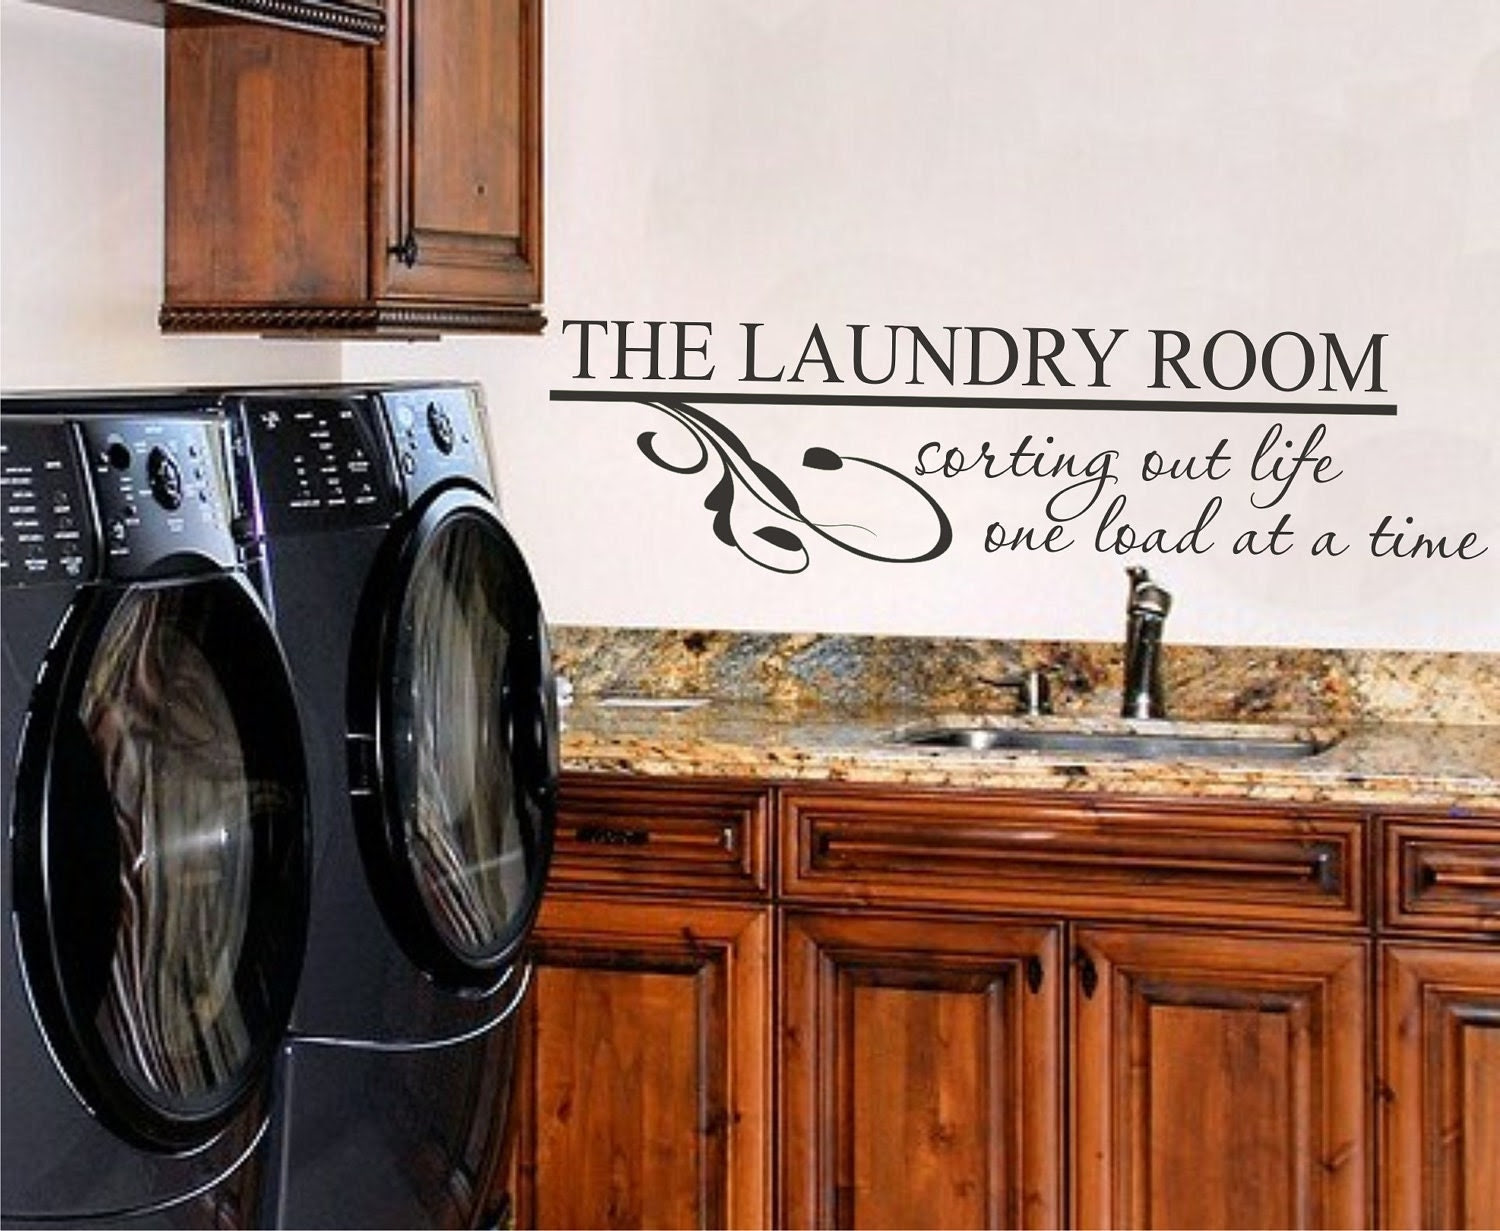 Popular items for laundry on Etsy